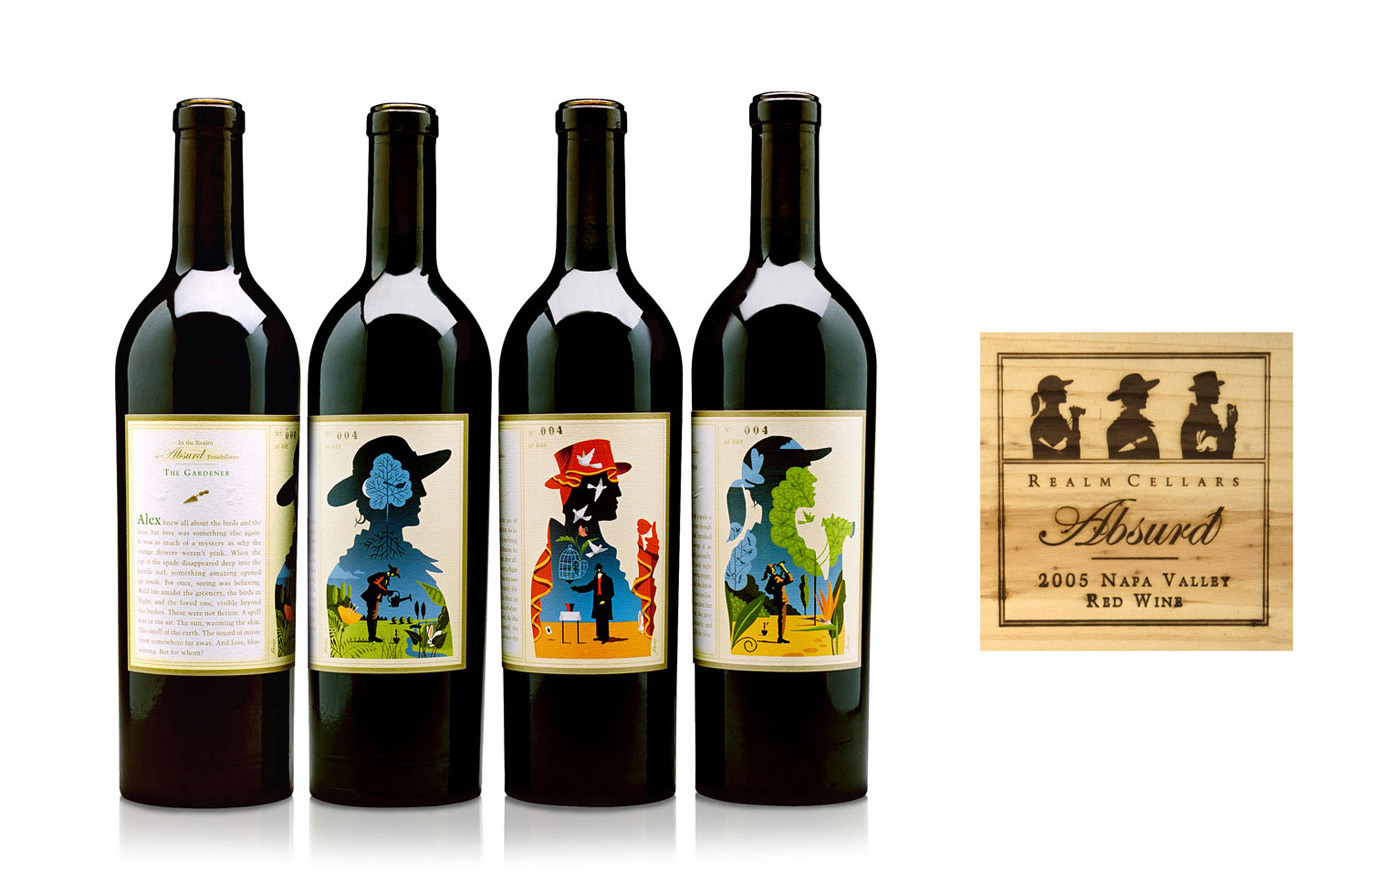 Realm Cellars.  The Absurd Collection was a three-bottle suite of numbered labels that broke convention in an absurd fashion. Each bottle had a wrap-around label with a surreal illustration flanked by the stories of Alex the Gardener, Whitman the Magician, and Collette the Birdwatcher. Rich with clues and symbols, the illustrations left breadcrumbs that further tell the love story of these three—open for a wide range of interpretations.